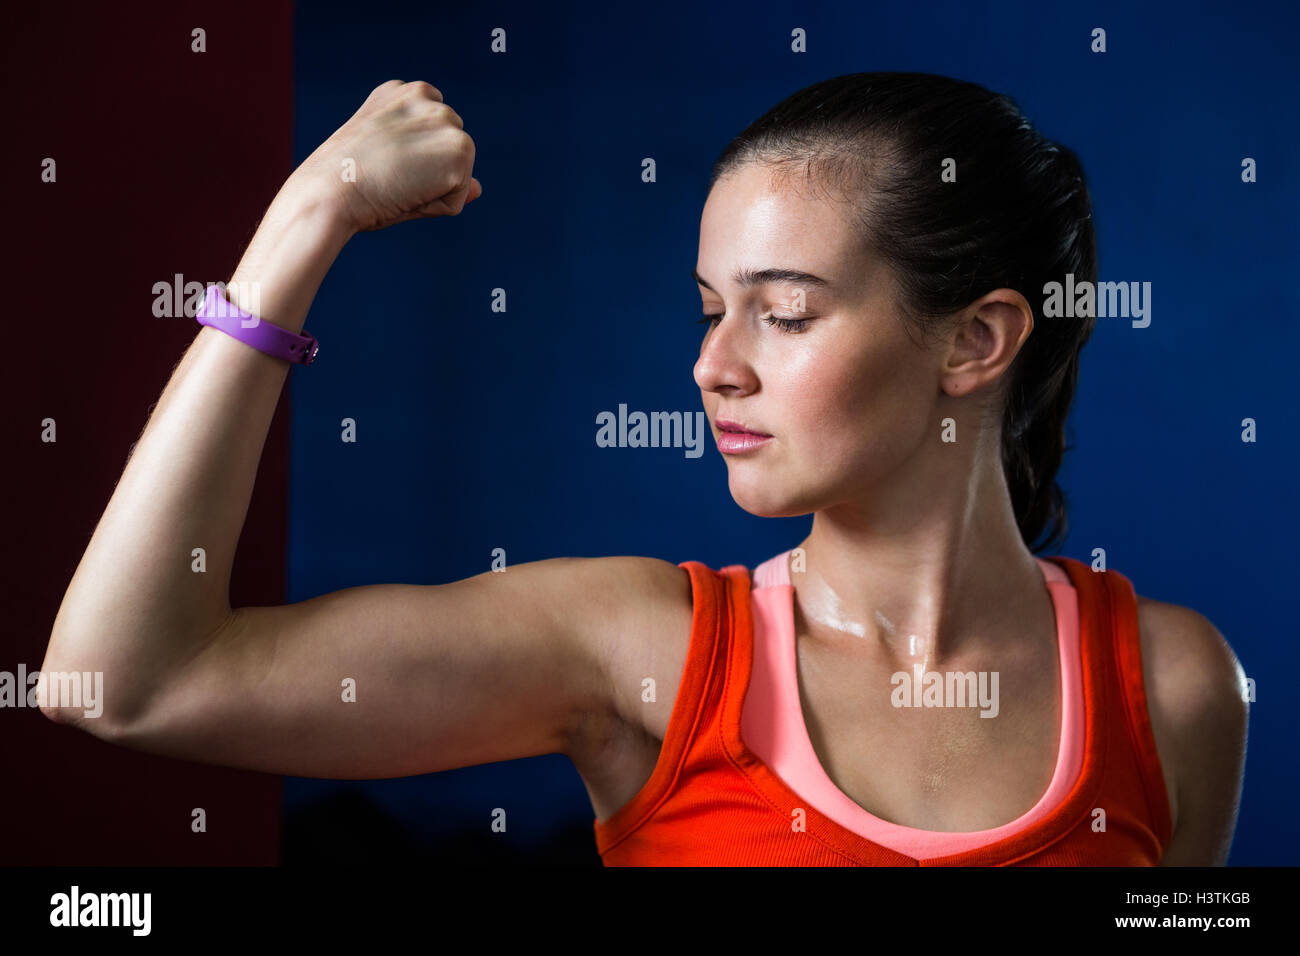 Close-up of woman flexing muscles in gym - Stock Image